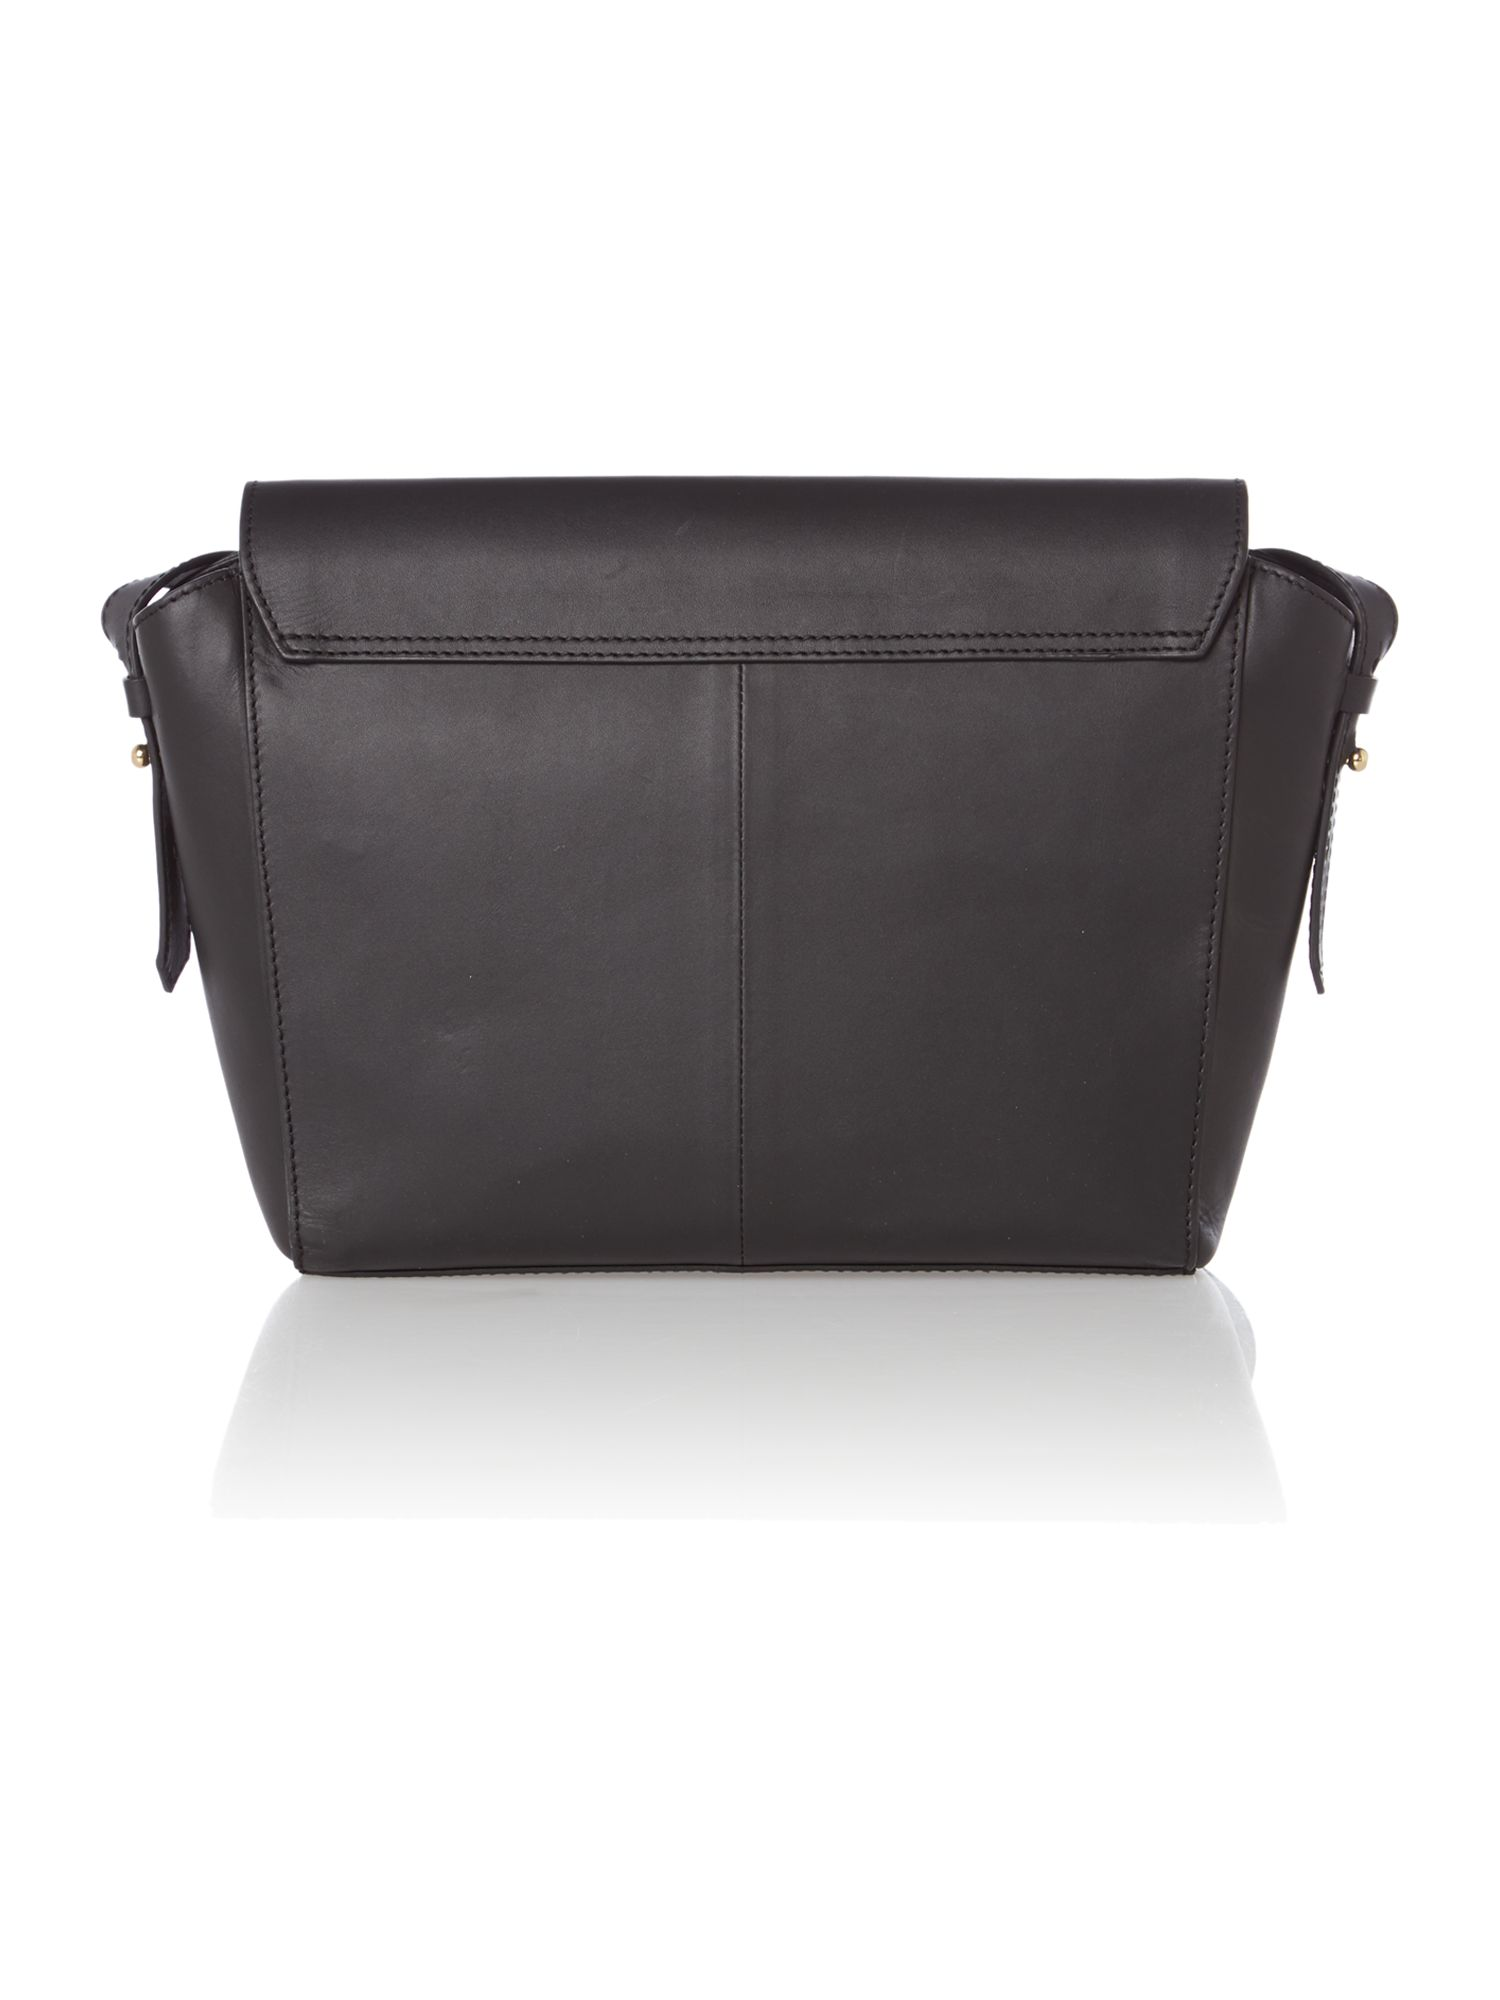 Large carine cross body bag